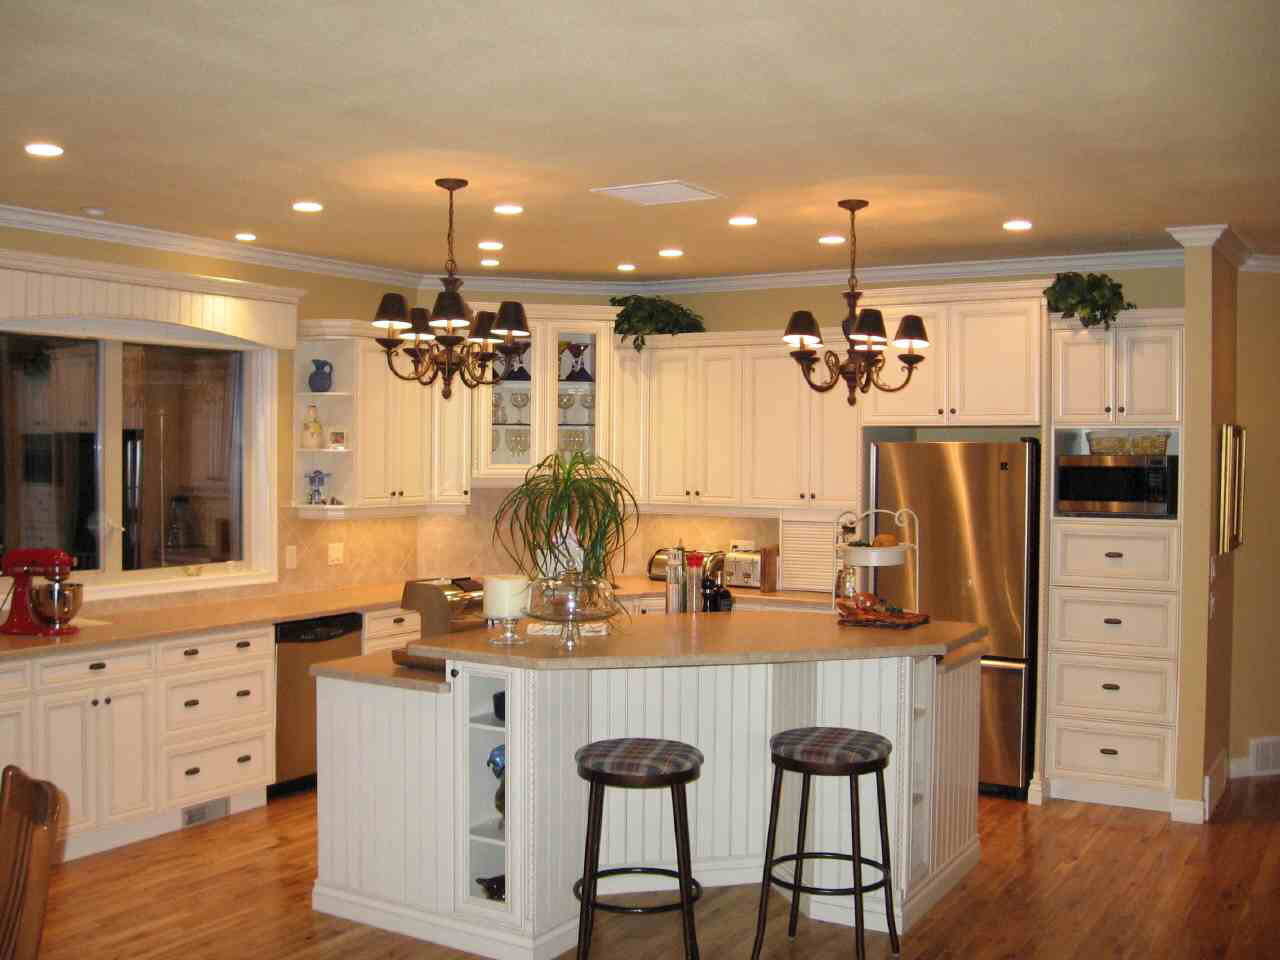 Kitchen Island Design Ideas for Small Kitchens